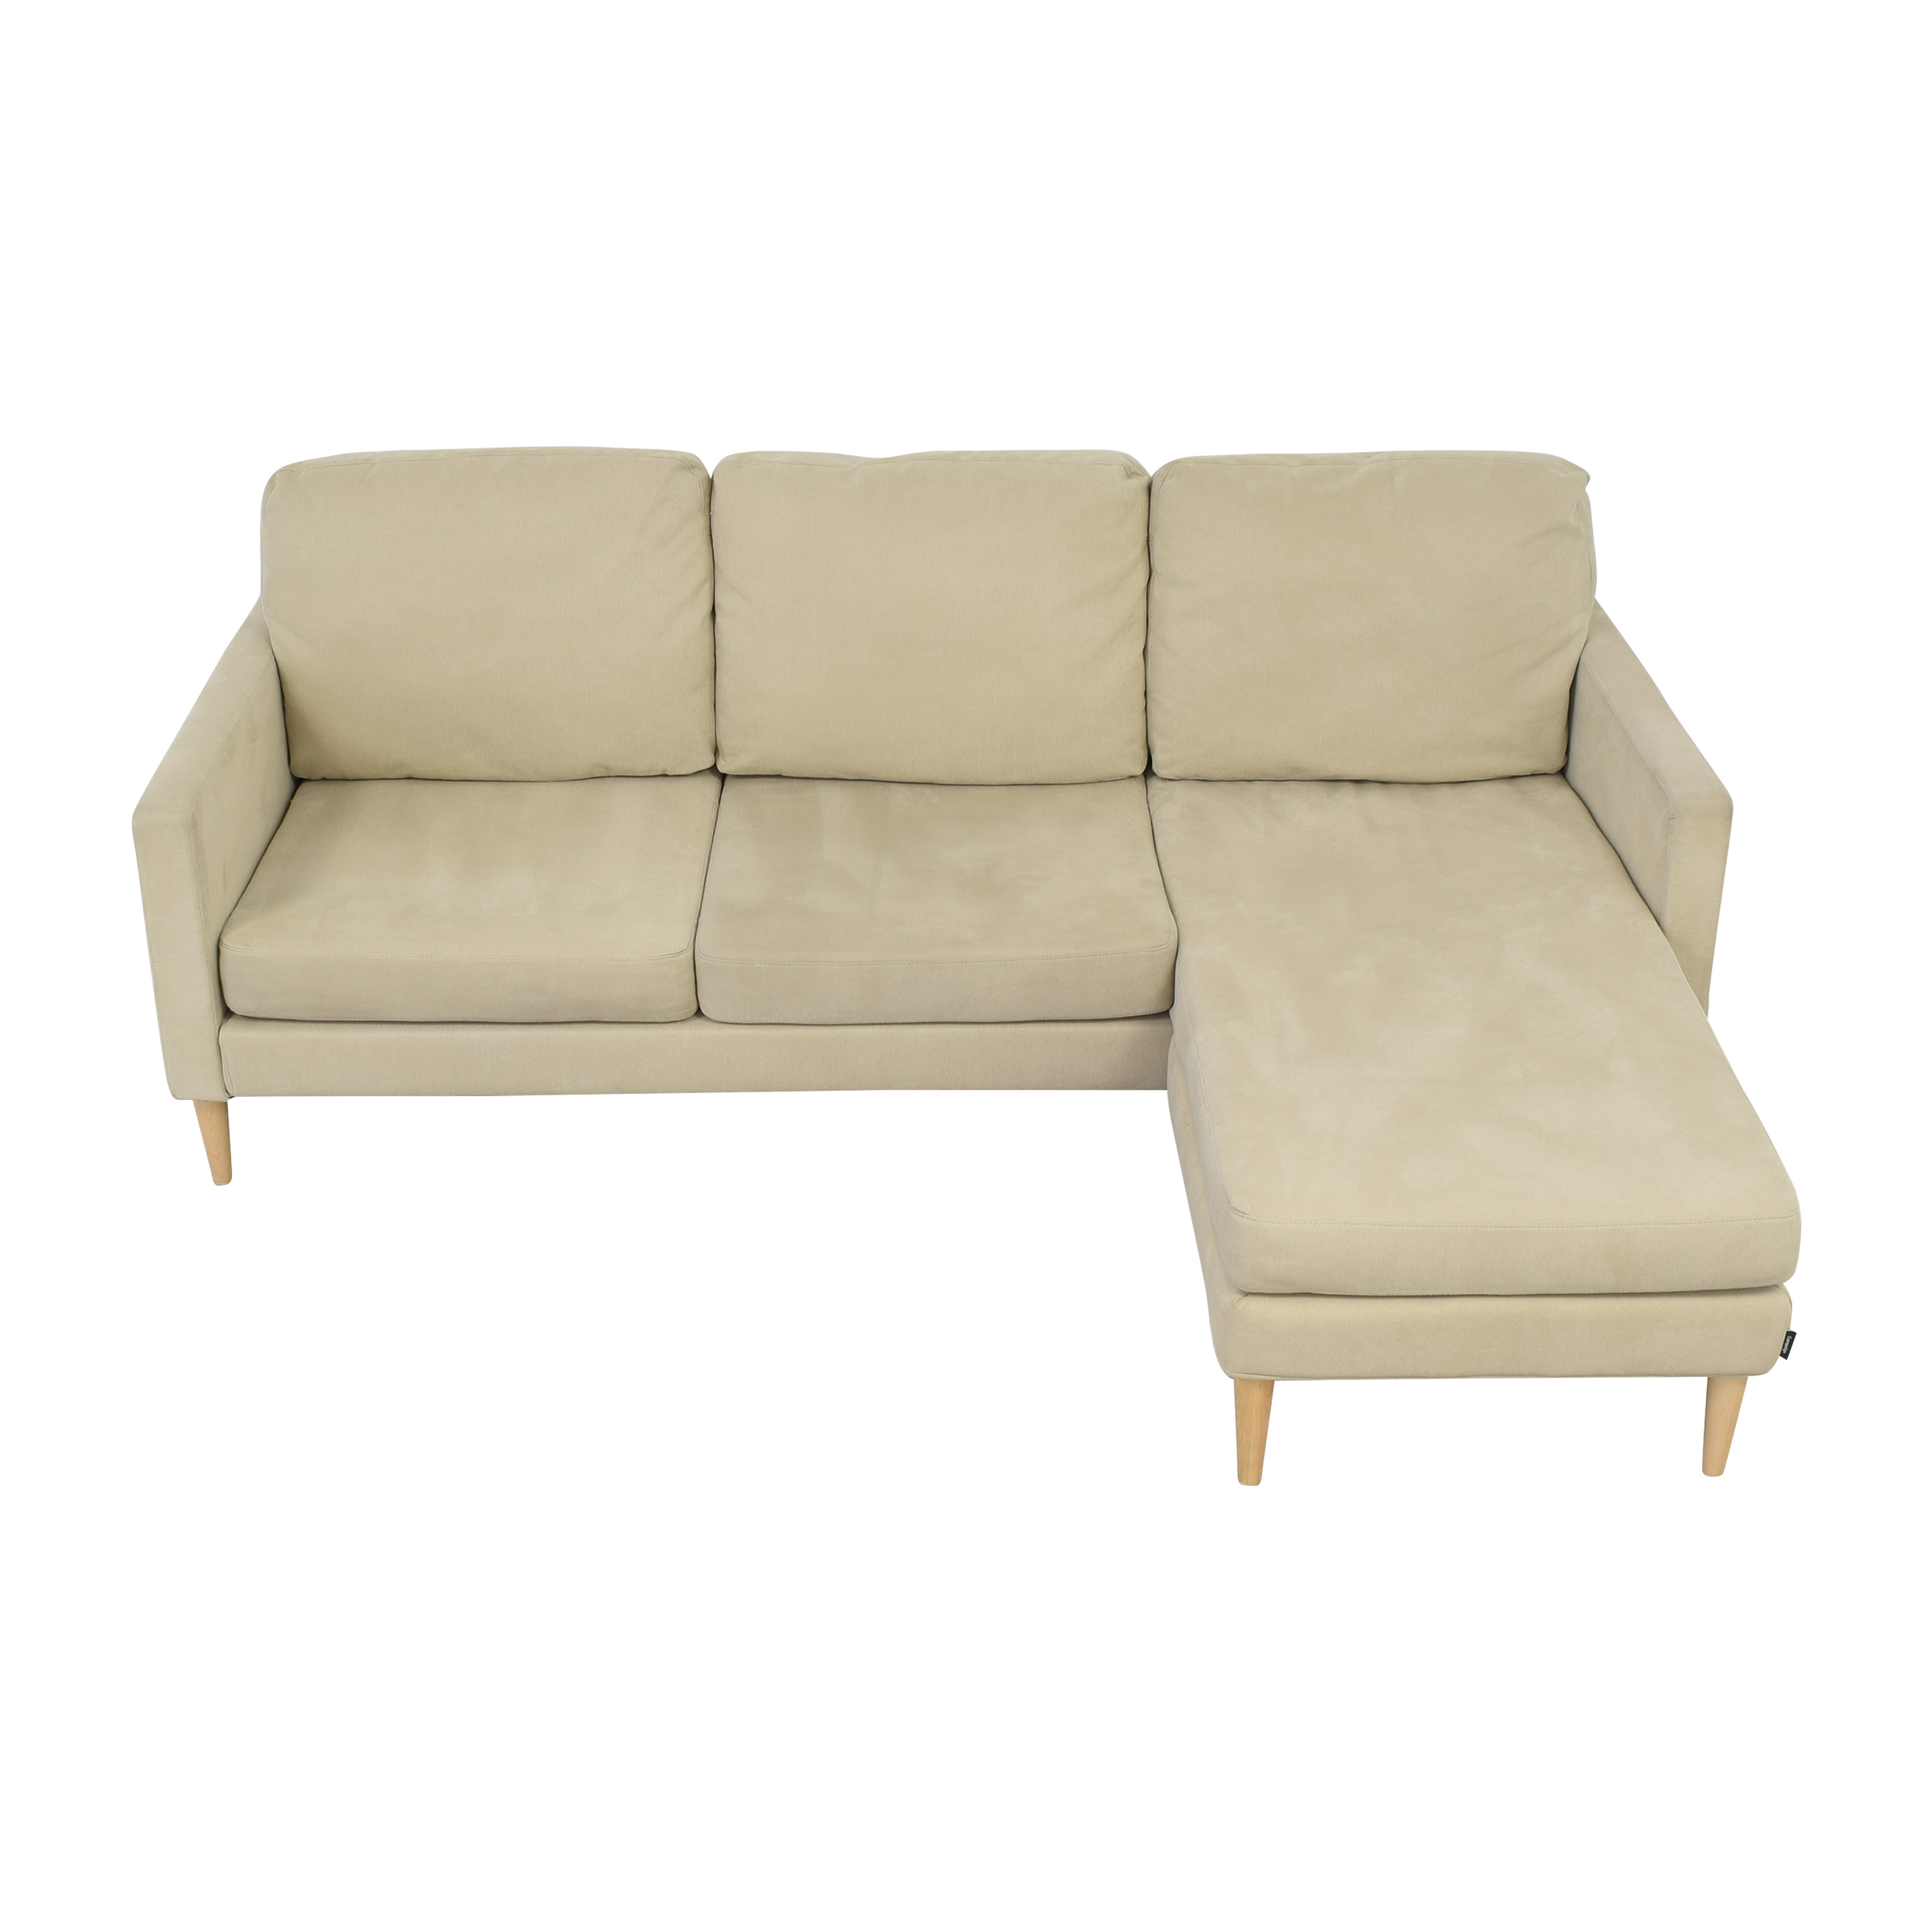 Campaign Campaign Modern Sectional Sofa on sale